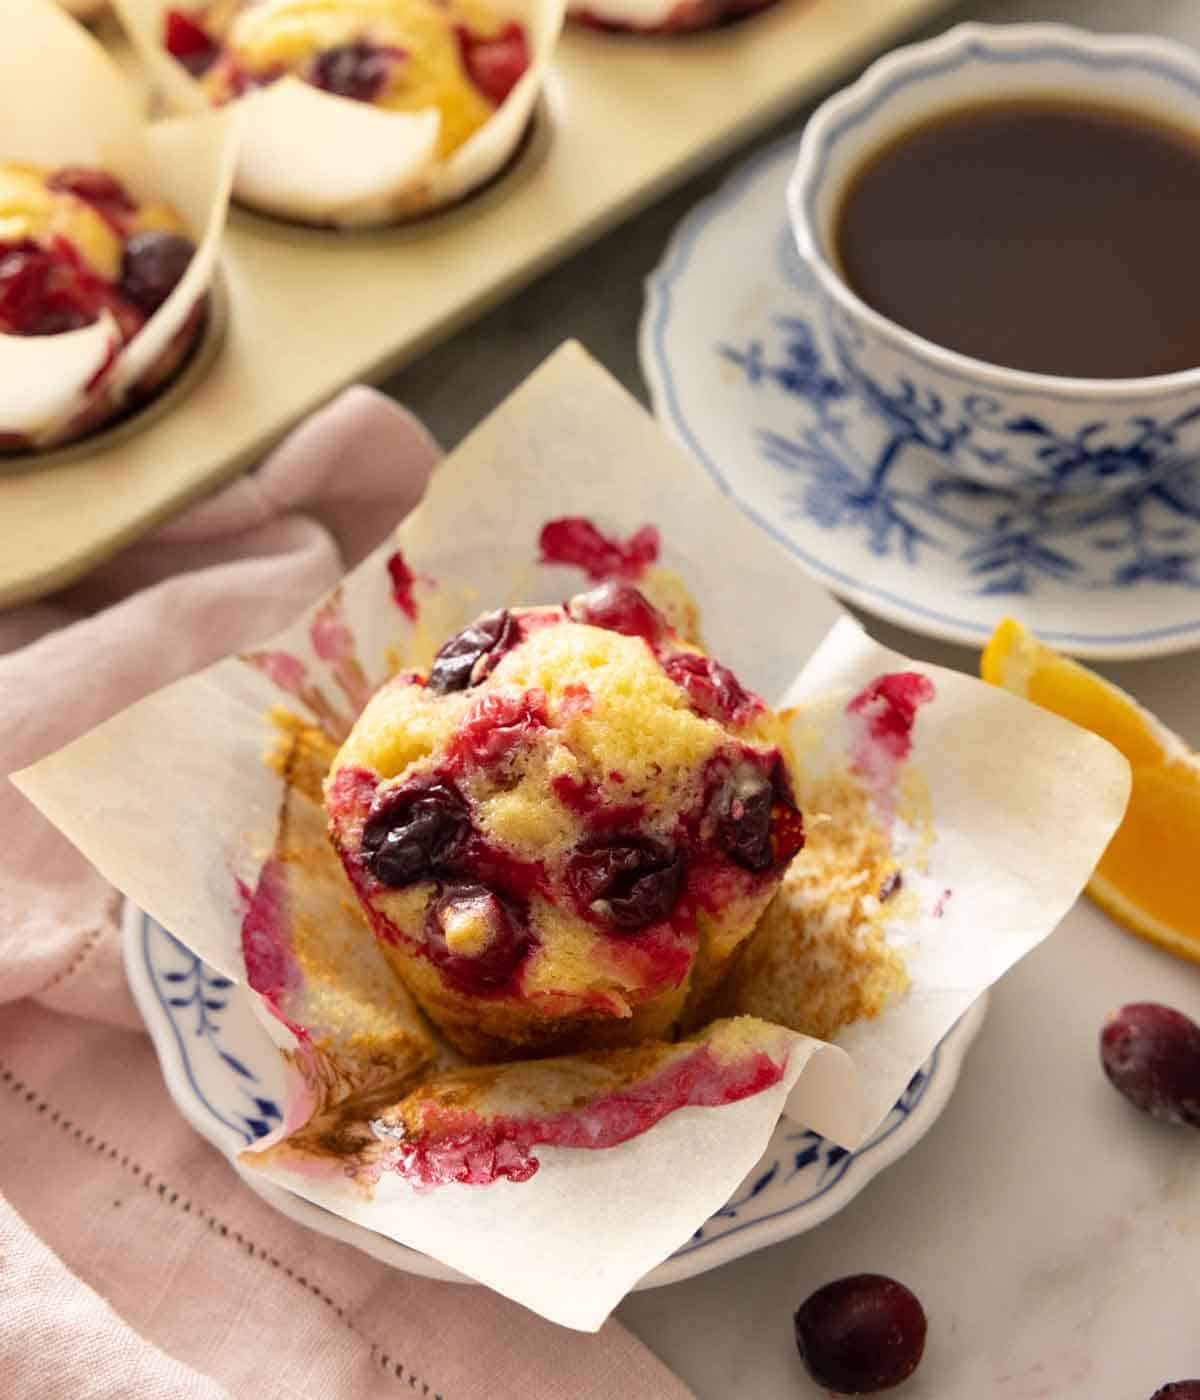 A plate with a cranberry orange muffins with the liner pulled open.